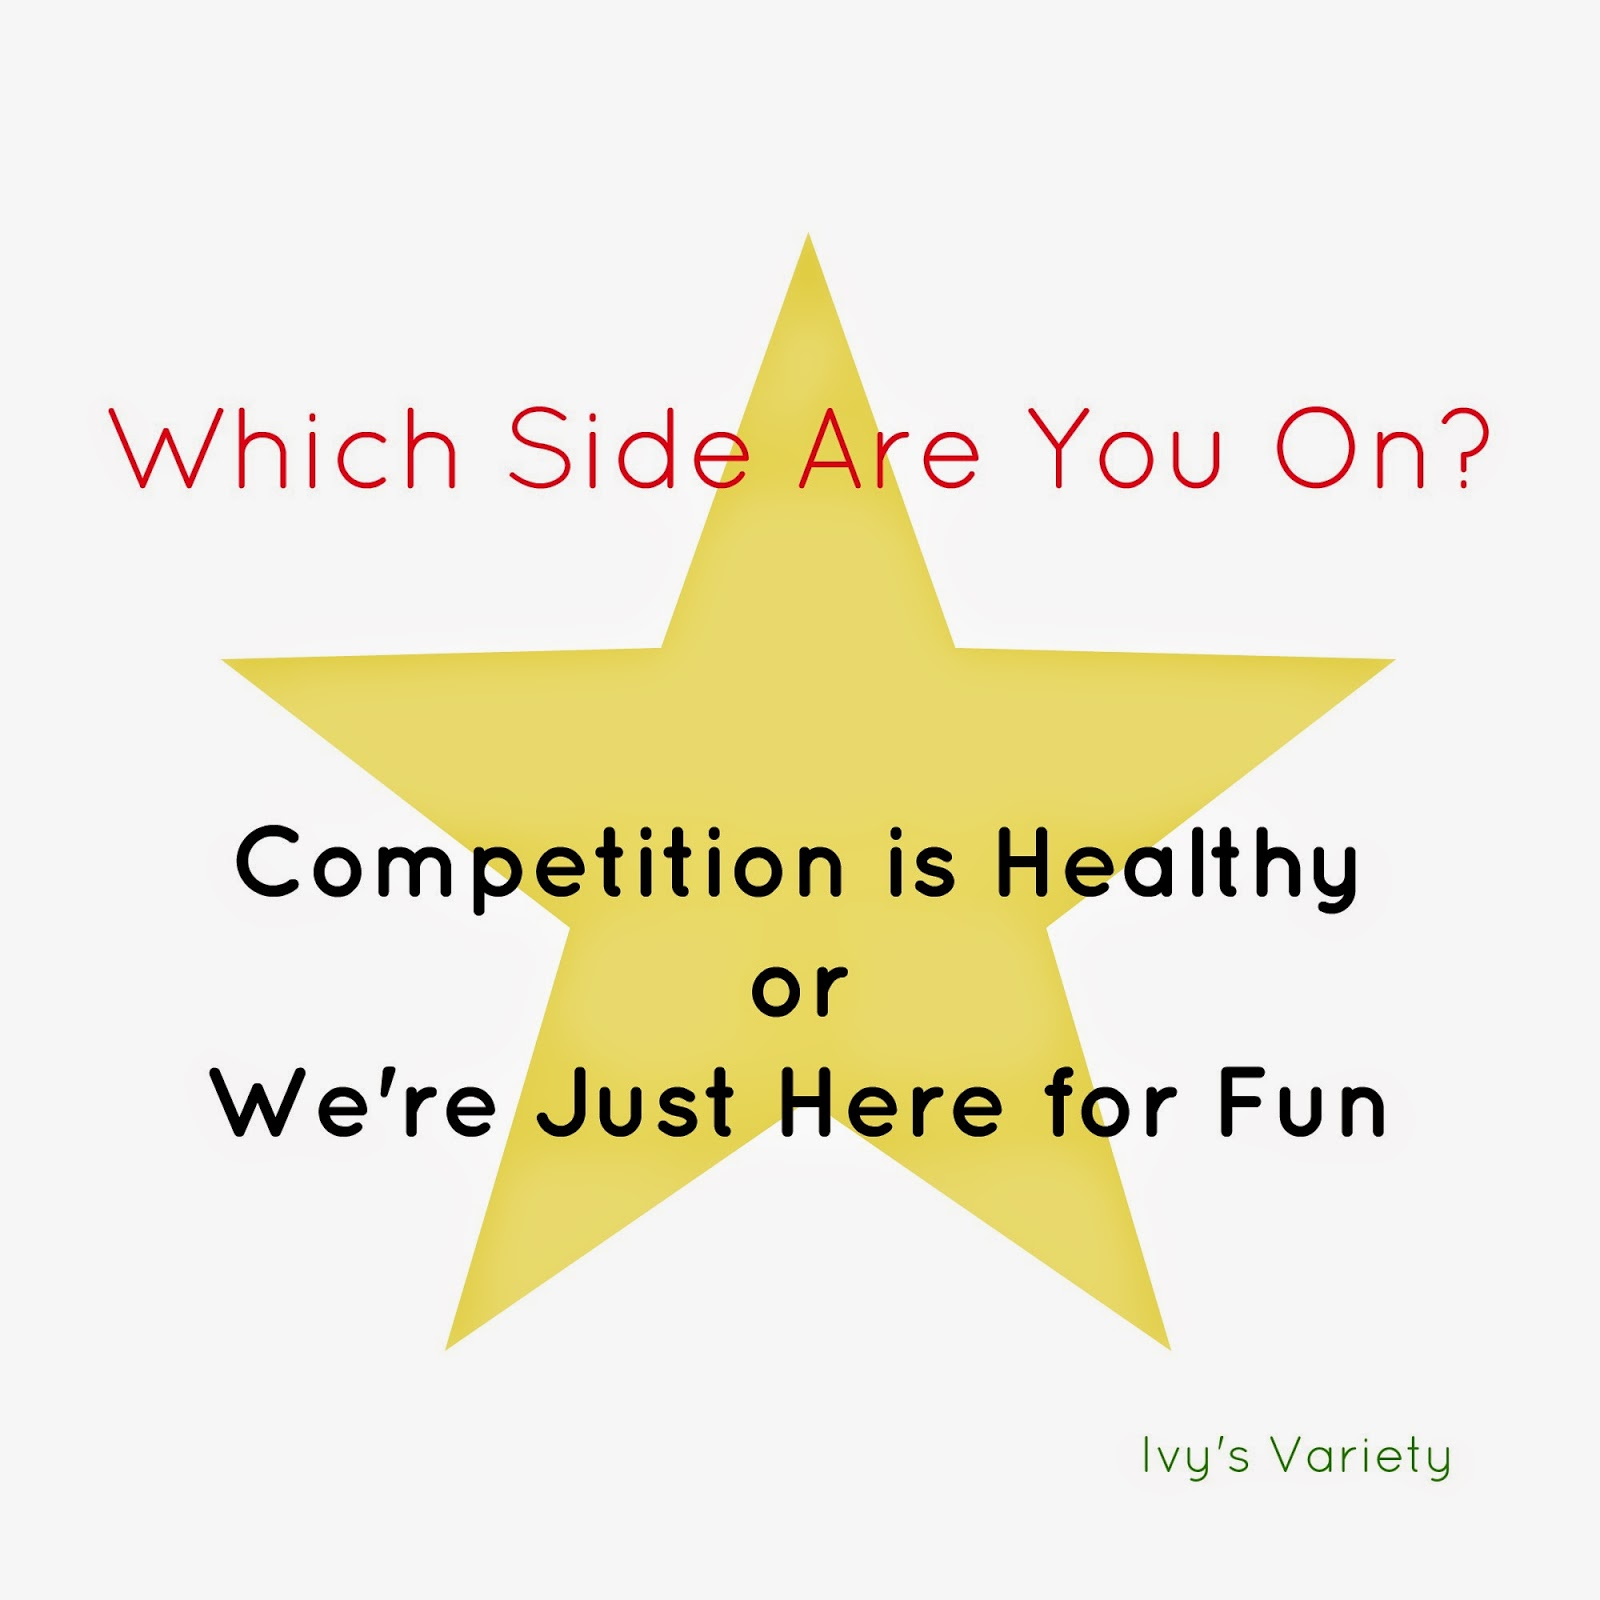 competition is healthy vs we're just here for fun img #ivysvariety